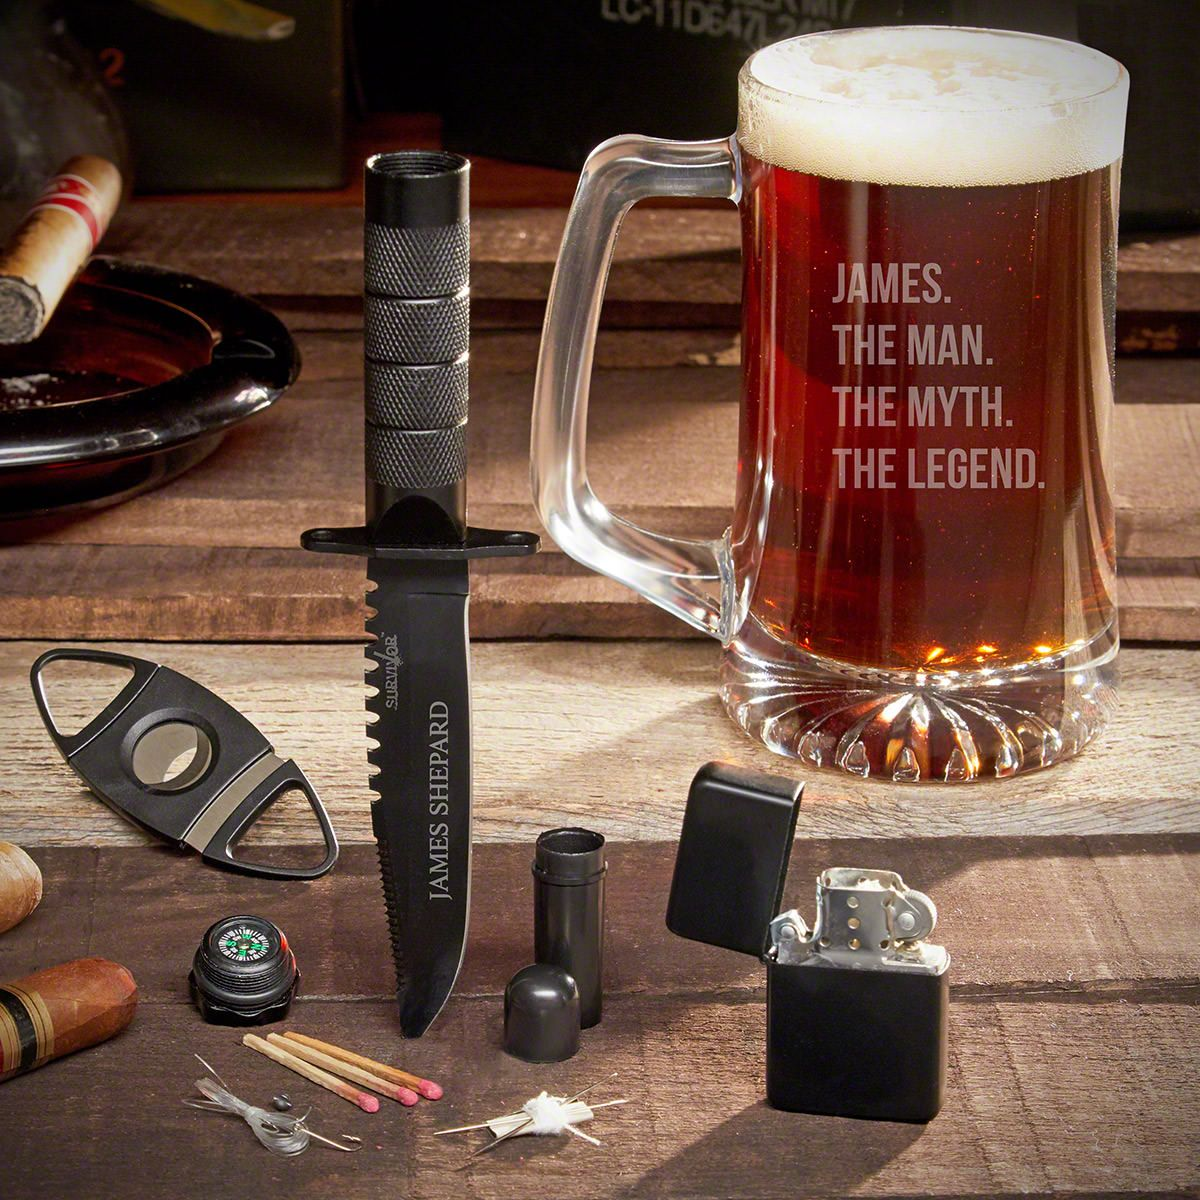 Man Myth Legend Custom Beer Mug Gift Set